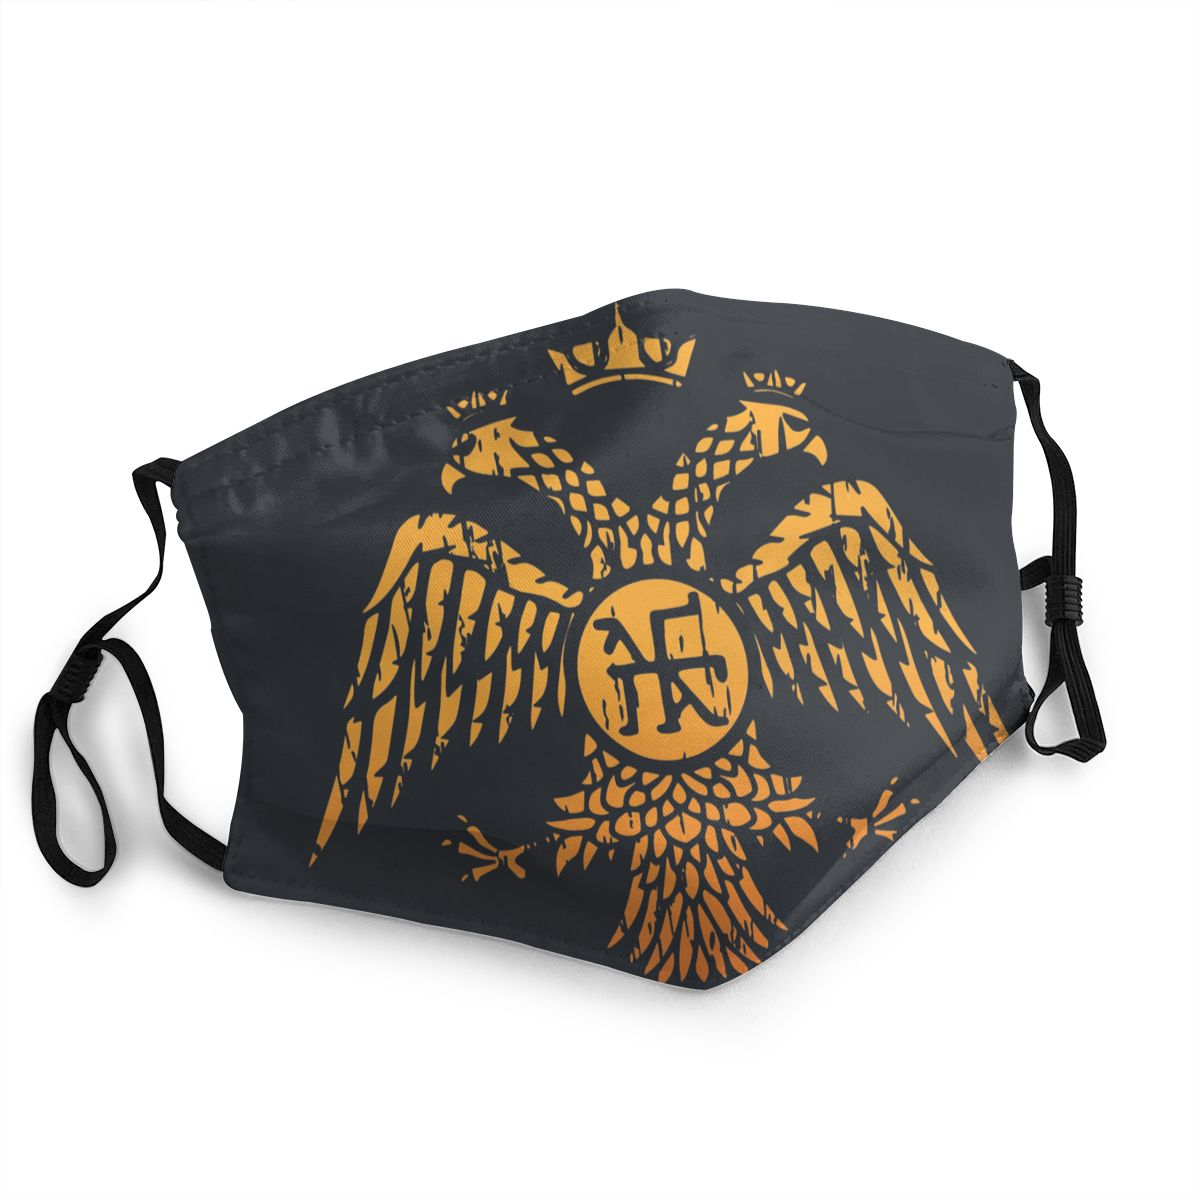 SPQR Byzantine Eagle Symbol Flag Adult Reusable Face Mask Pattern Anti Bacterial Dust Protection Mask Respirator Mouth Muffle